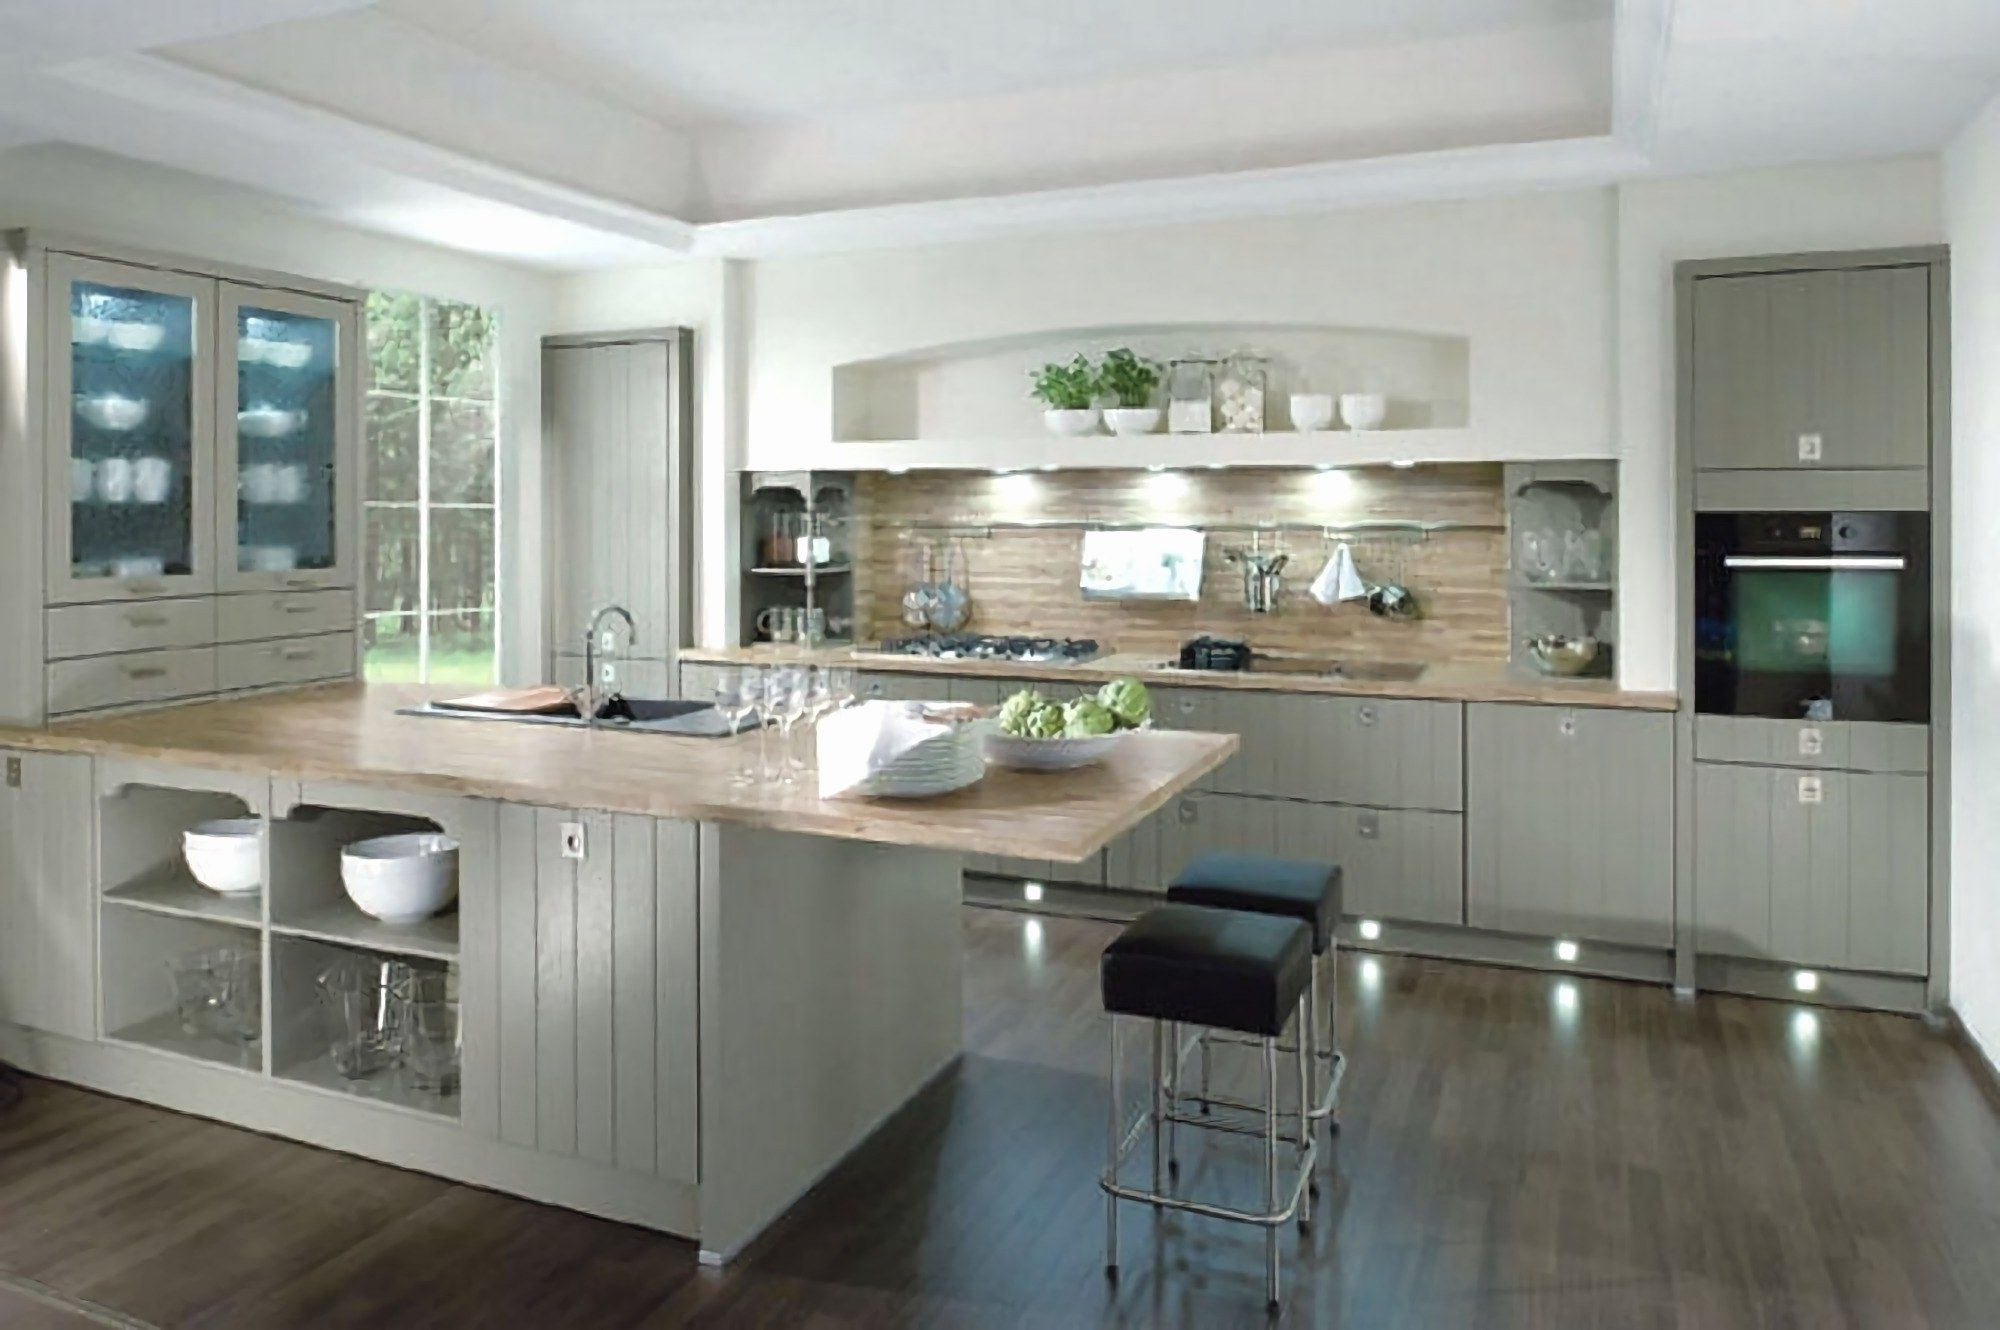 Luxus Landhausküche 21 Genial Landhausküche Luxus Kitchen In 2019